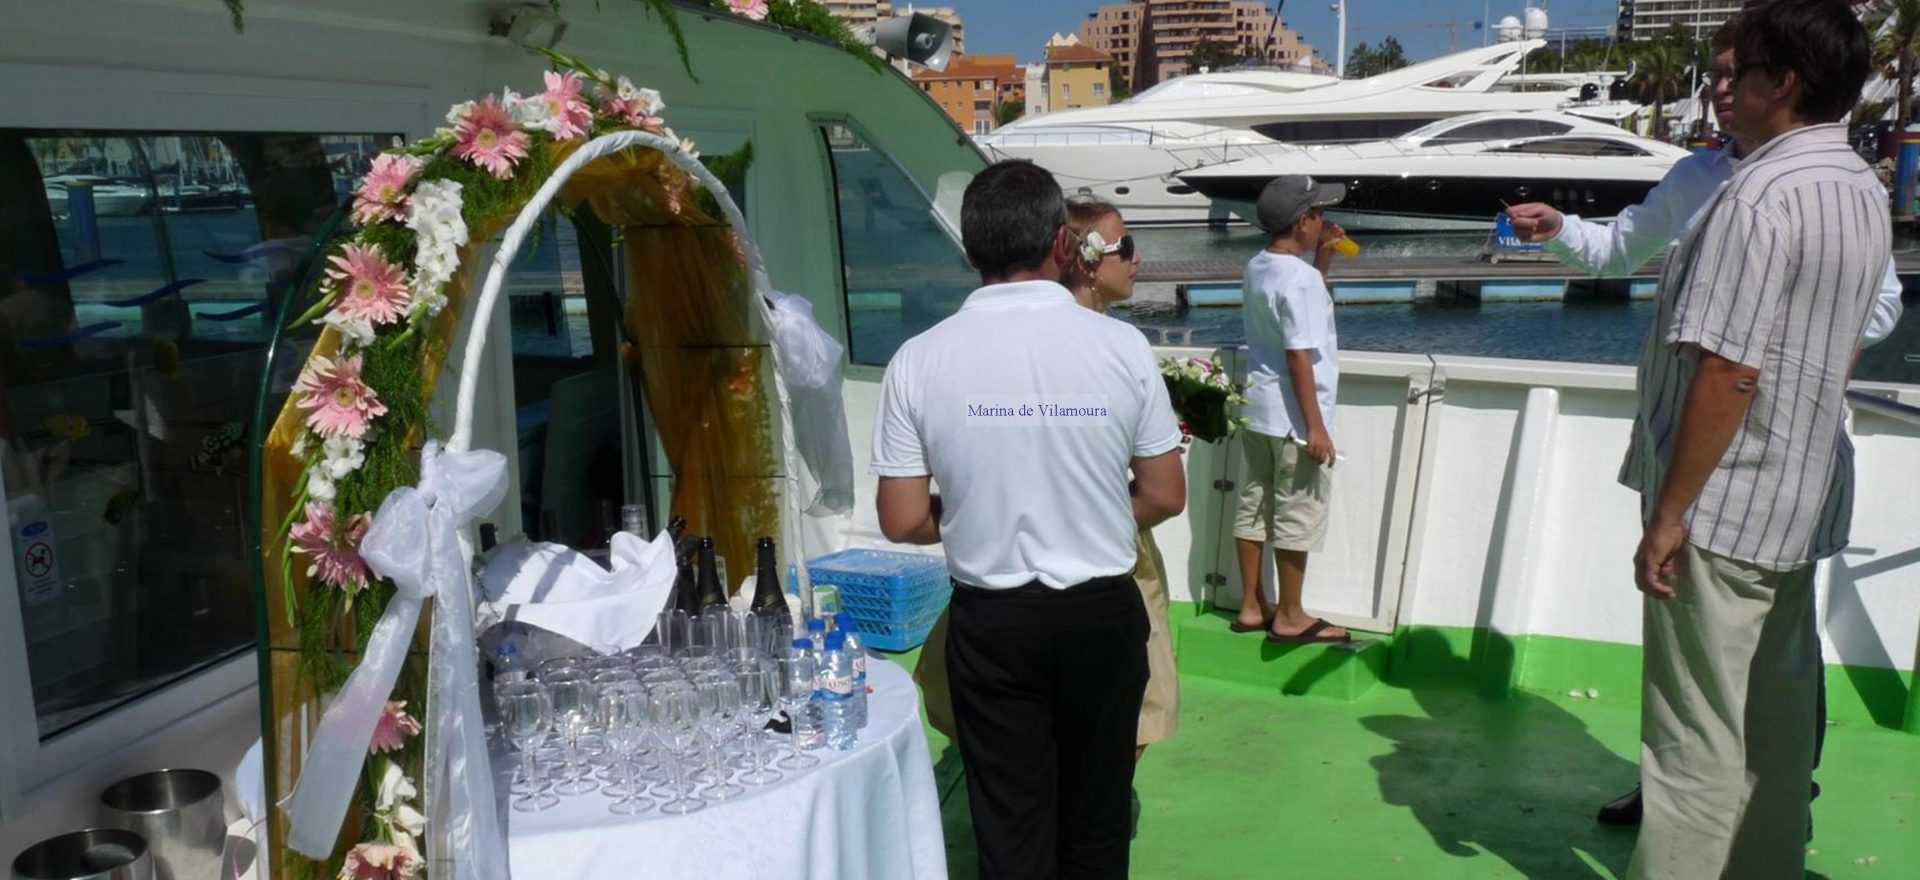 boat trips wedding vilamoura algarve